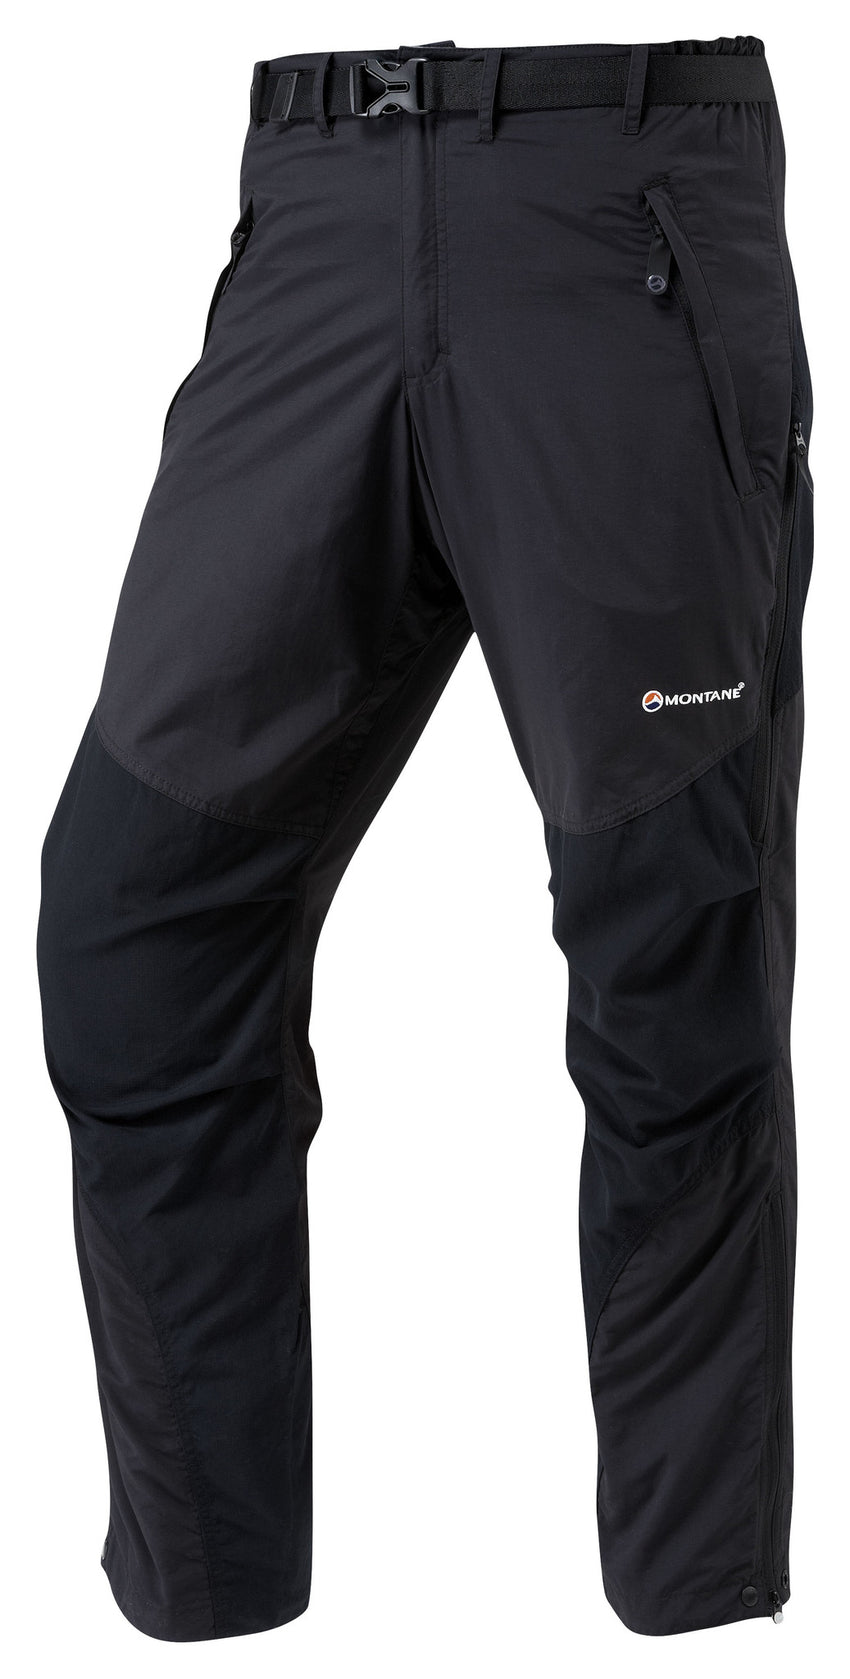 Montane Terra Pants - Regular Leg Black